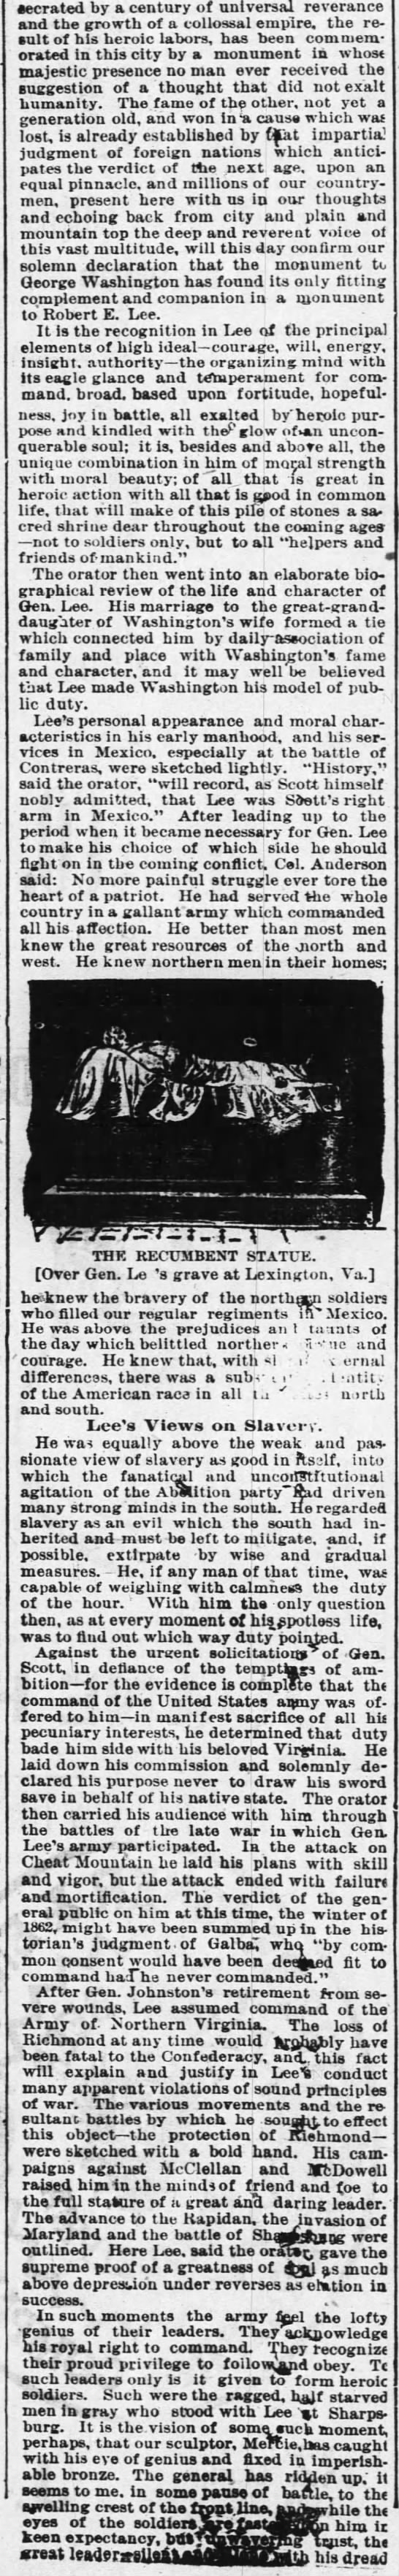 On occasion of unveiling of statue in Richmond - Danville Bee - June 5, 1890 -